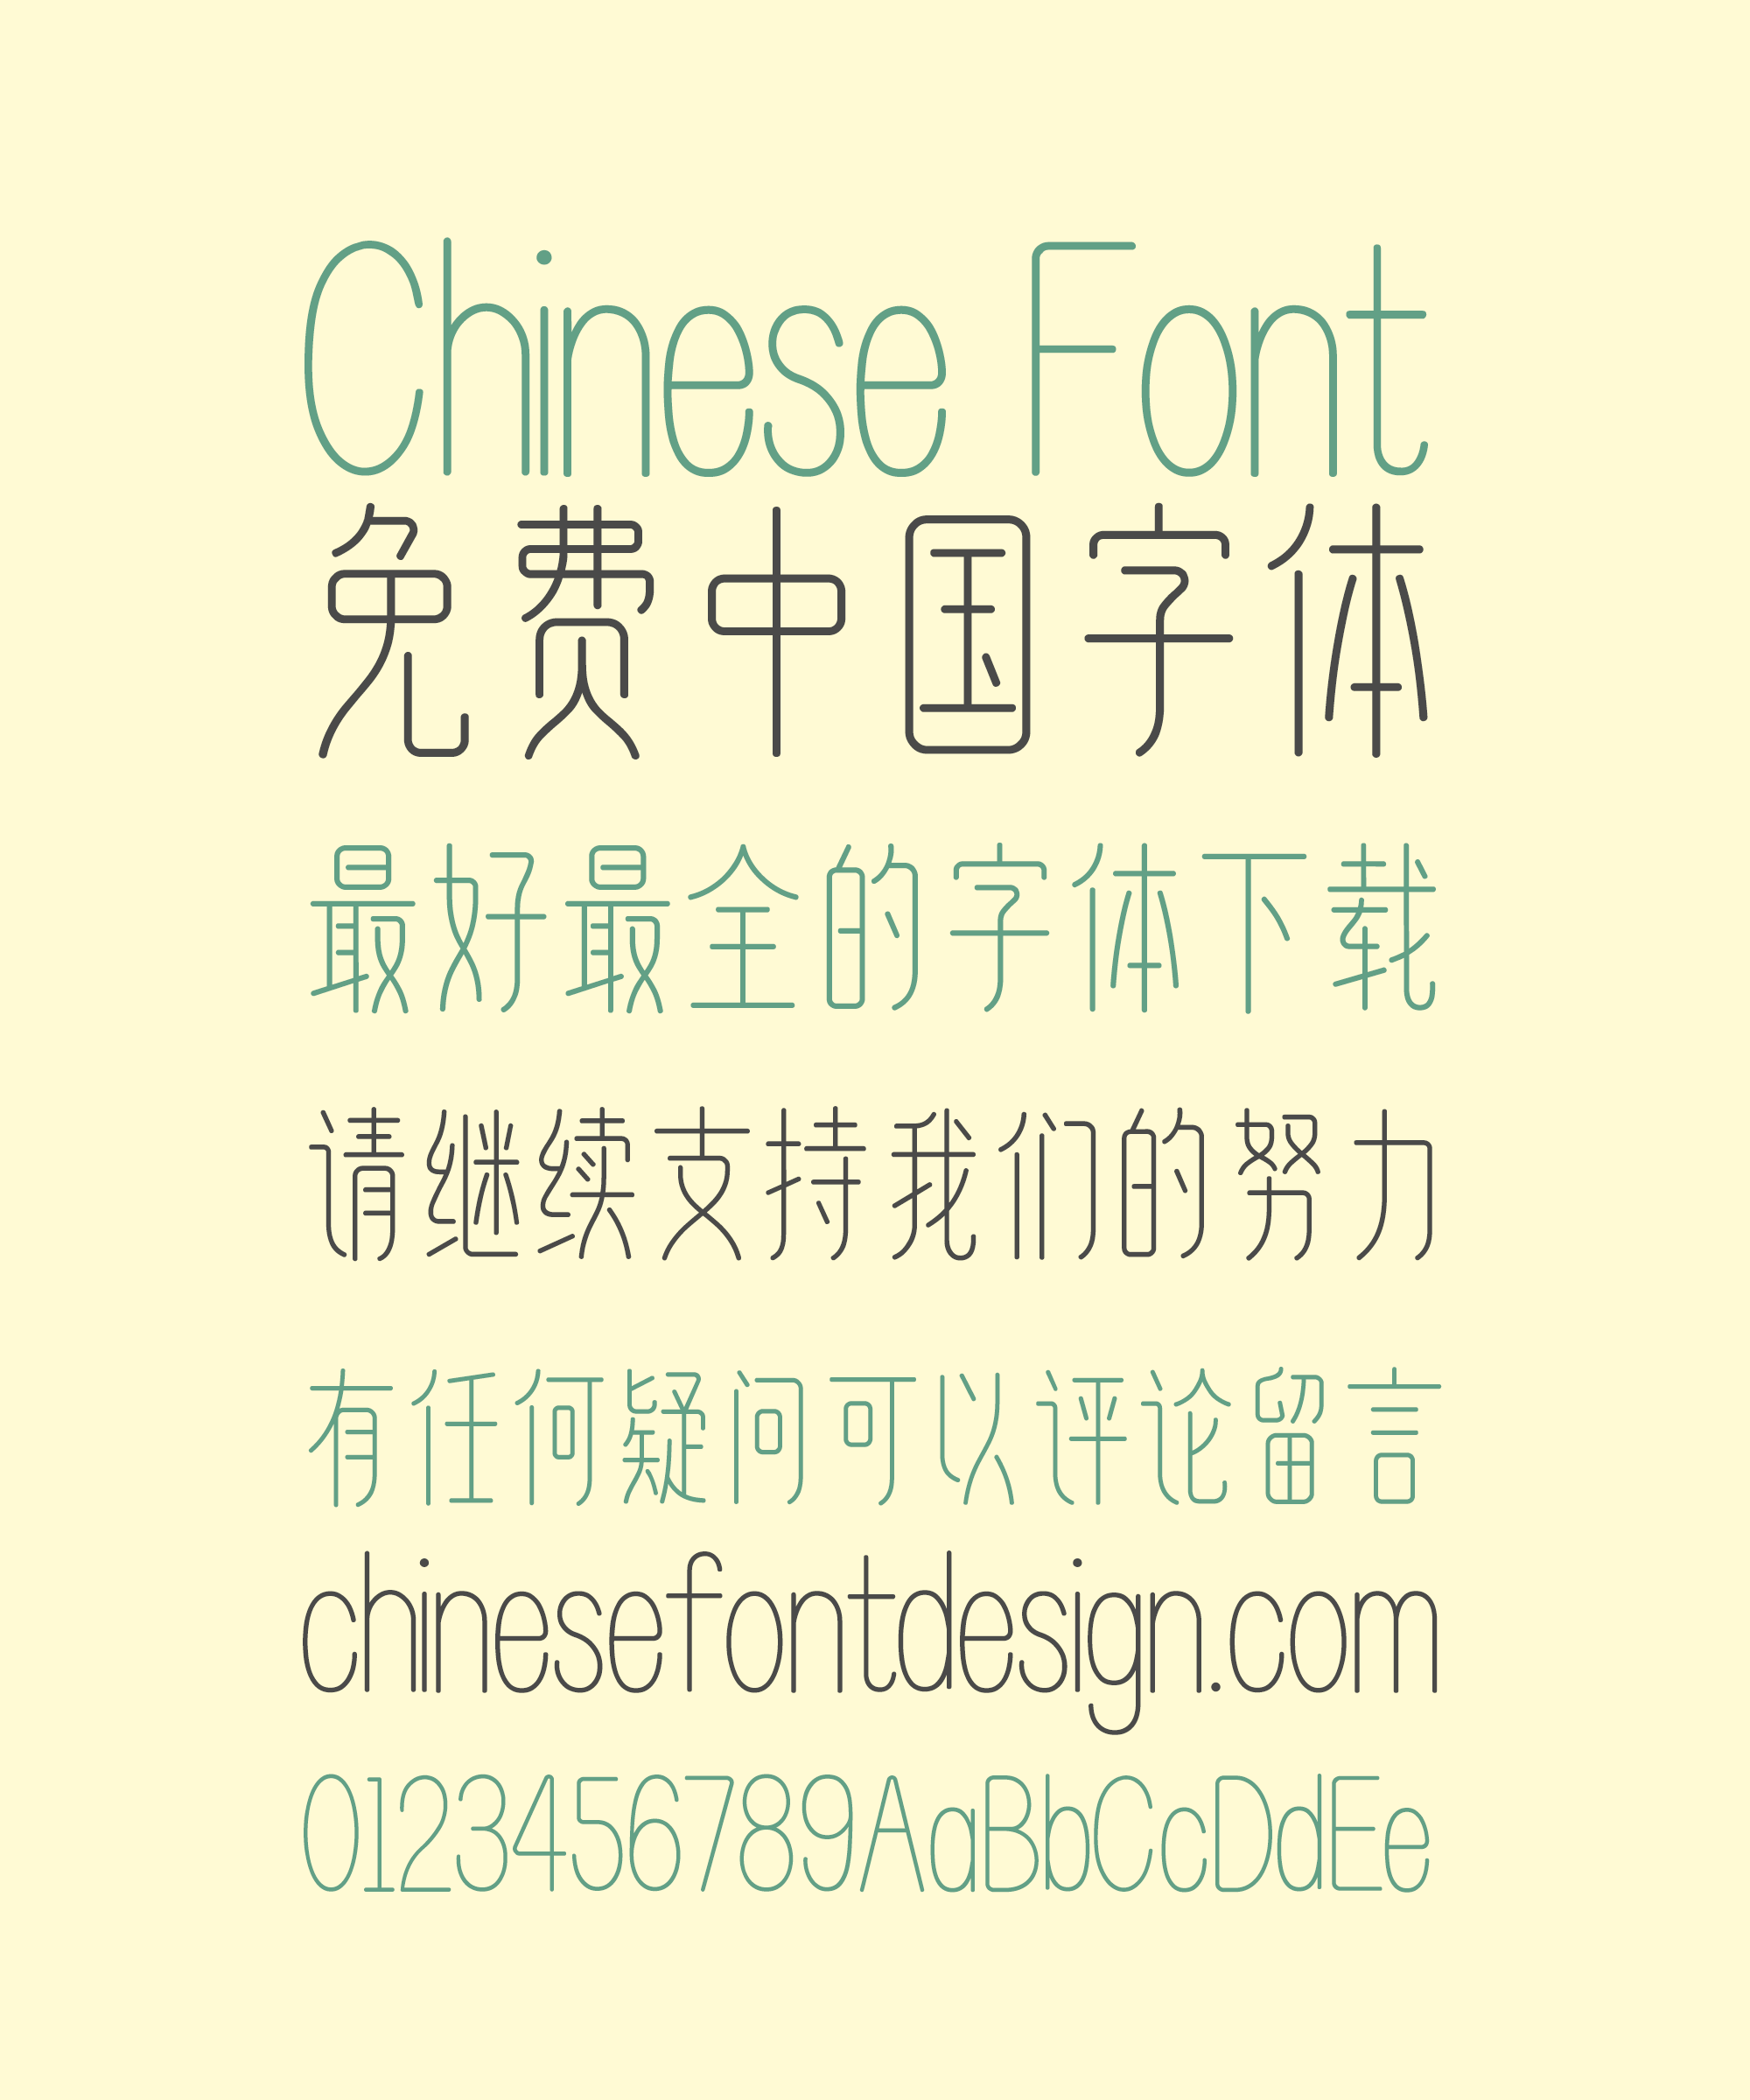 Zao Zi Gong Fang (Makefont) Buddhism Chinese Font -Simplified Chinese Fonts